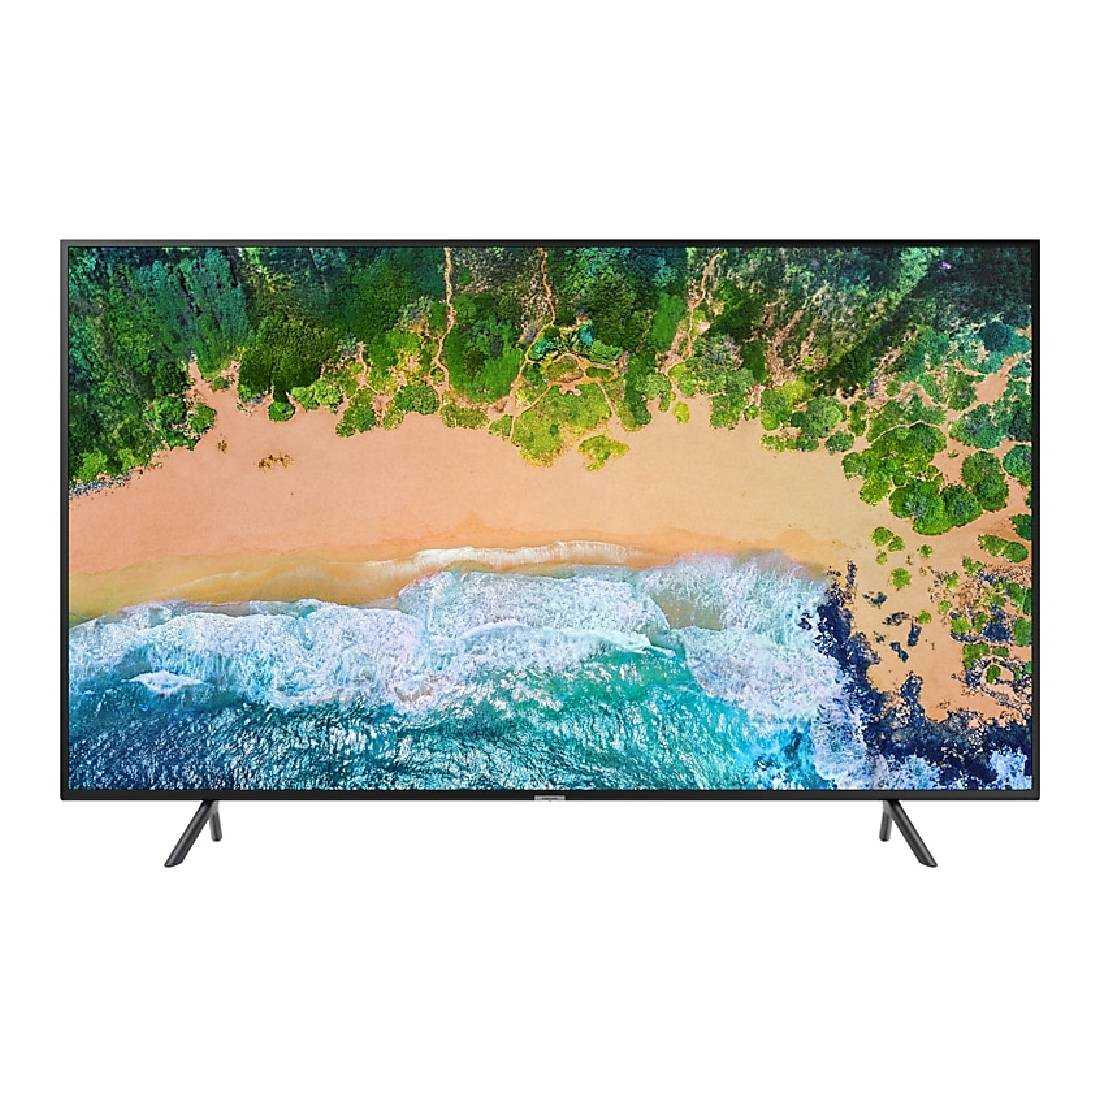 "Smart TV SAMSUNG UN49NU7100 49"" 4K"